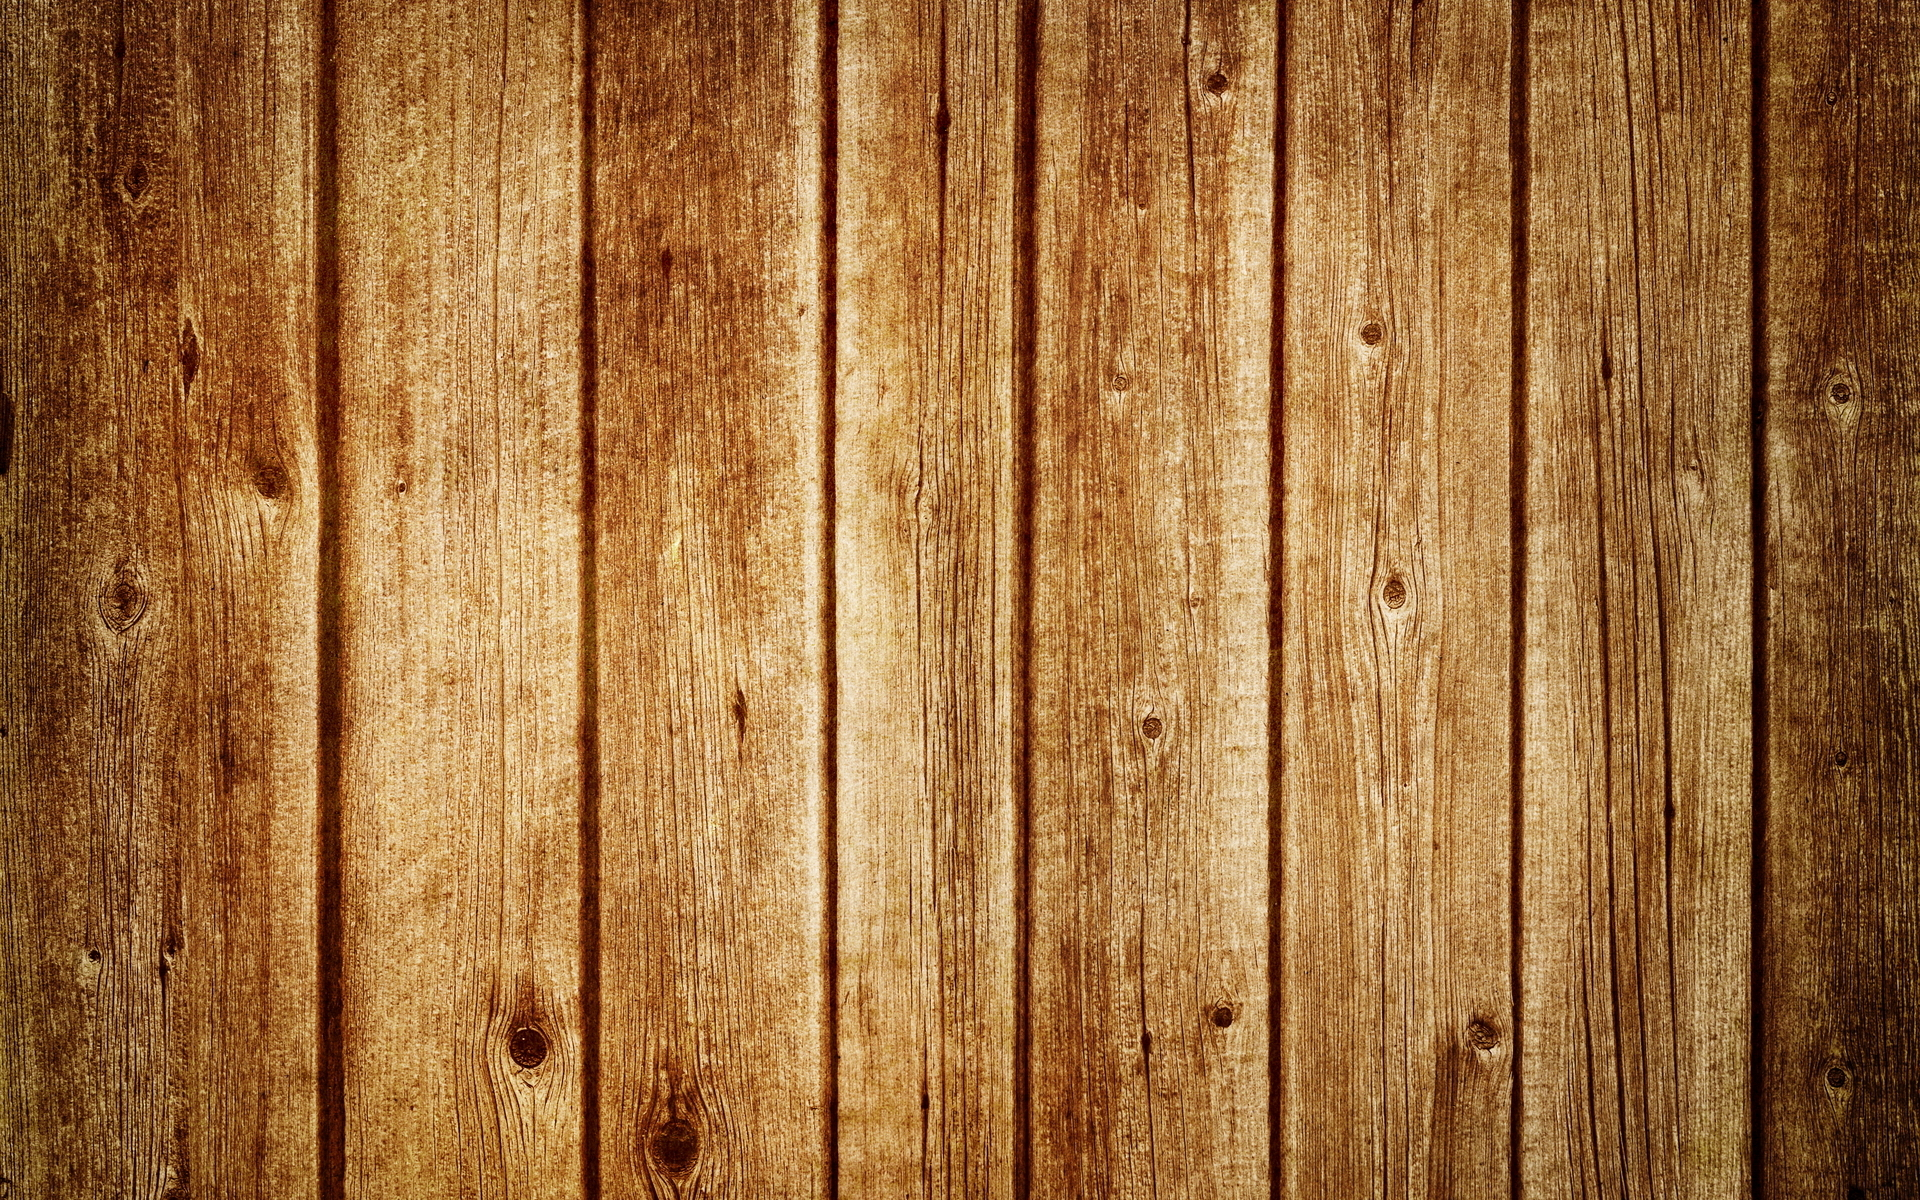 3d Wood Wallpaper Wallpapersafari - Board wood tree macro hd wallpaper 3d abstract wallpapers